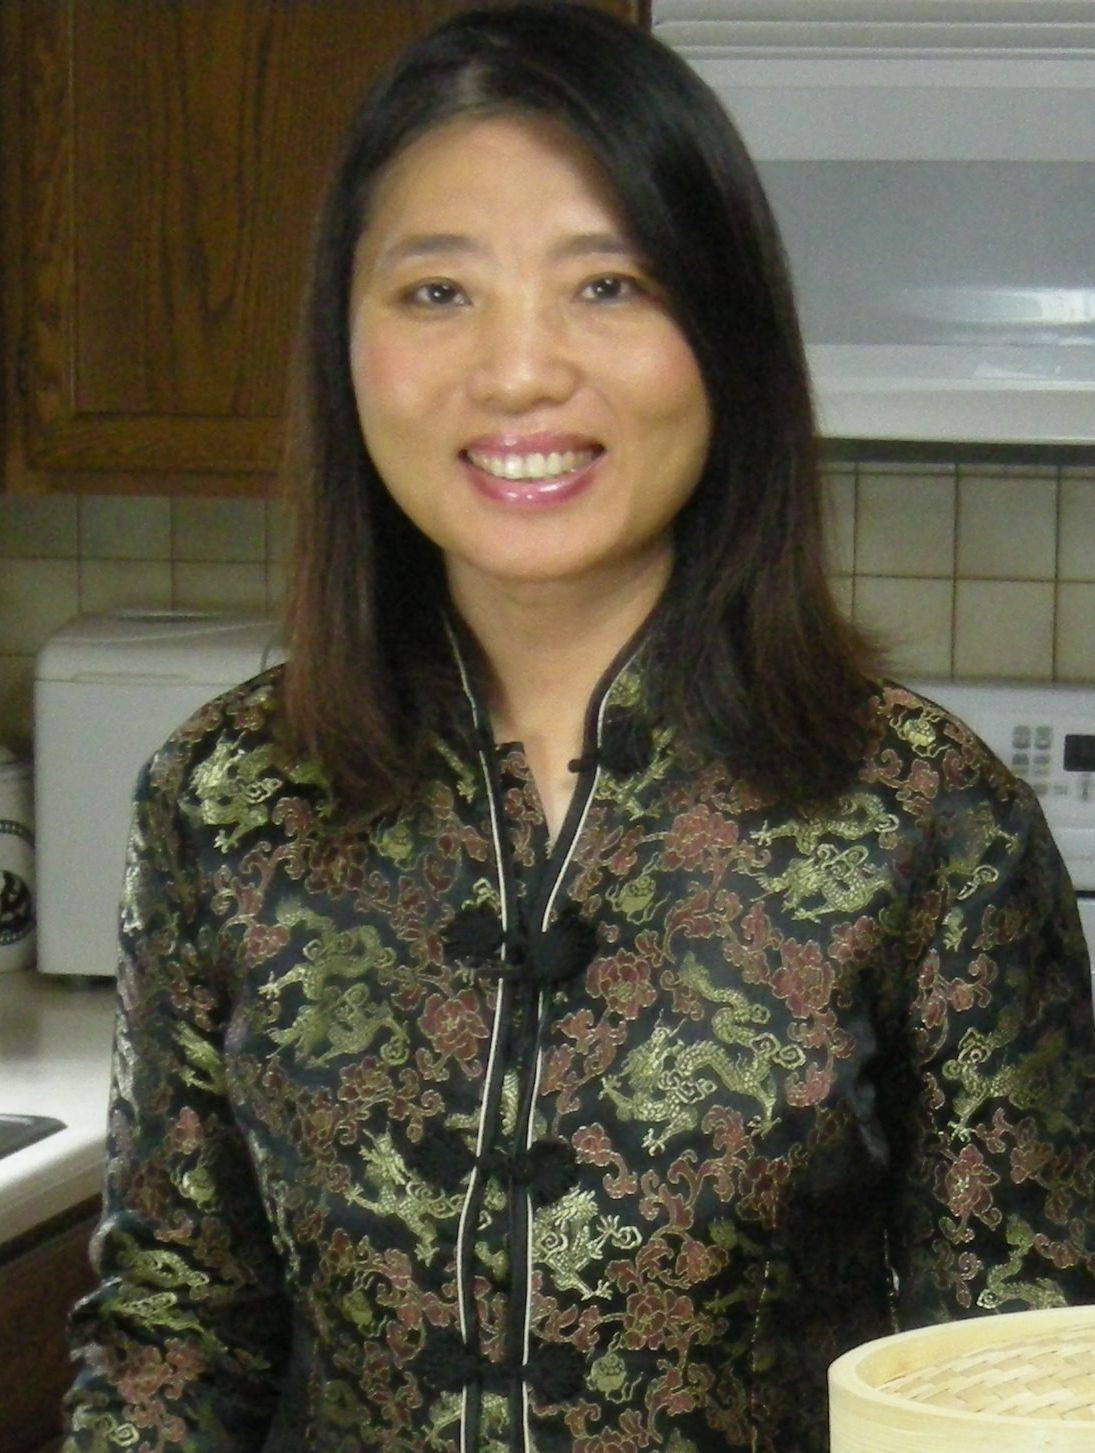 Ying Stoller of Ying's Kitchen